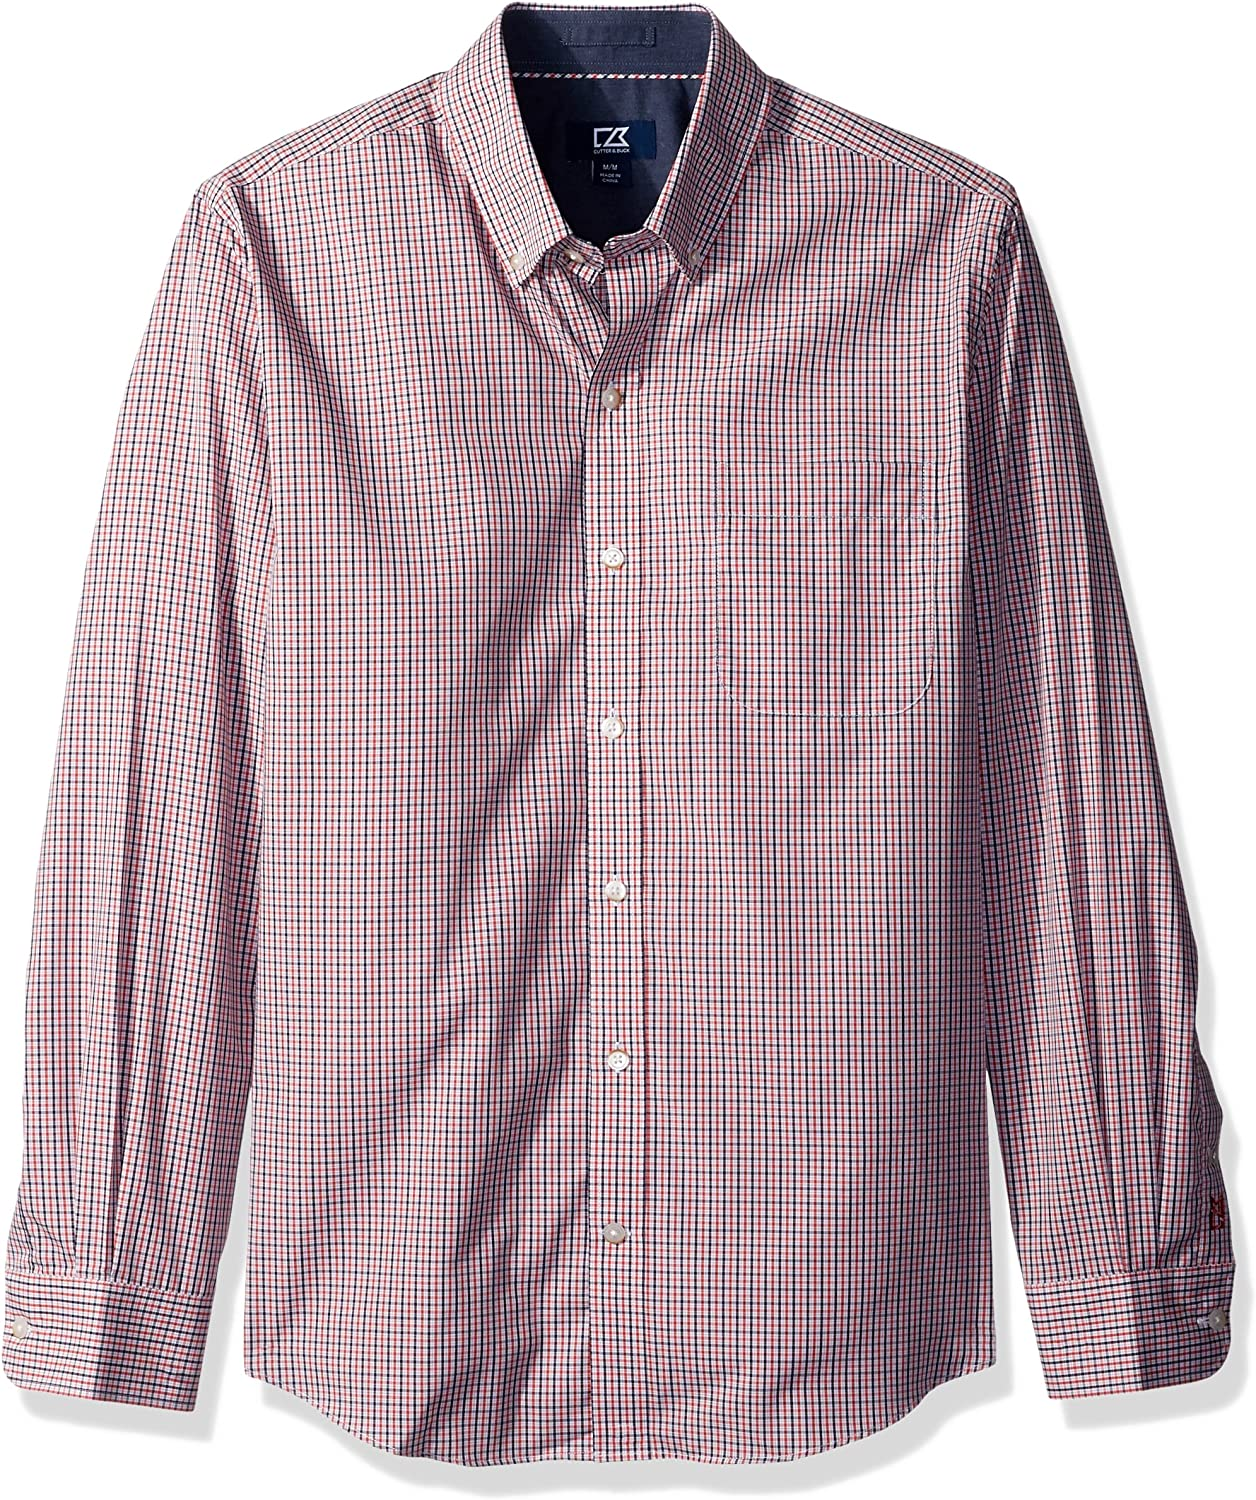 Cutter & Buck Men's Small Plaid and Check Easy Care Button Down Collared Shirts